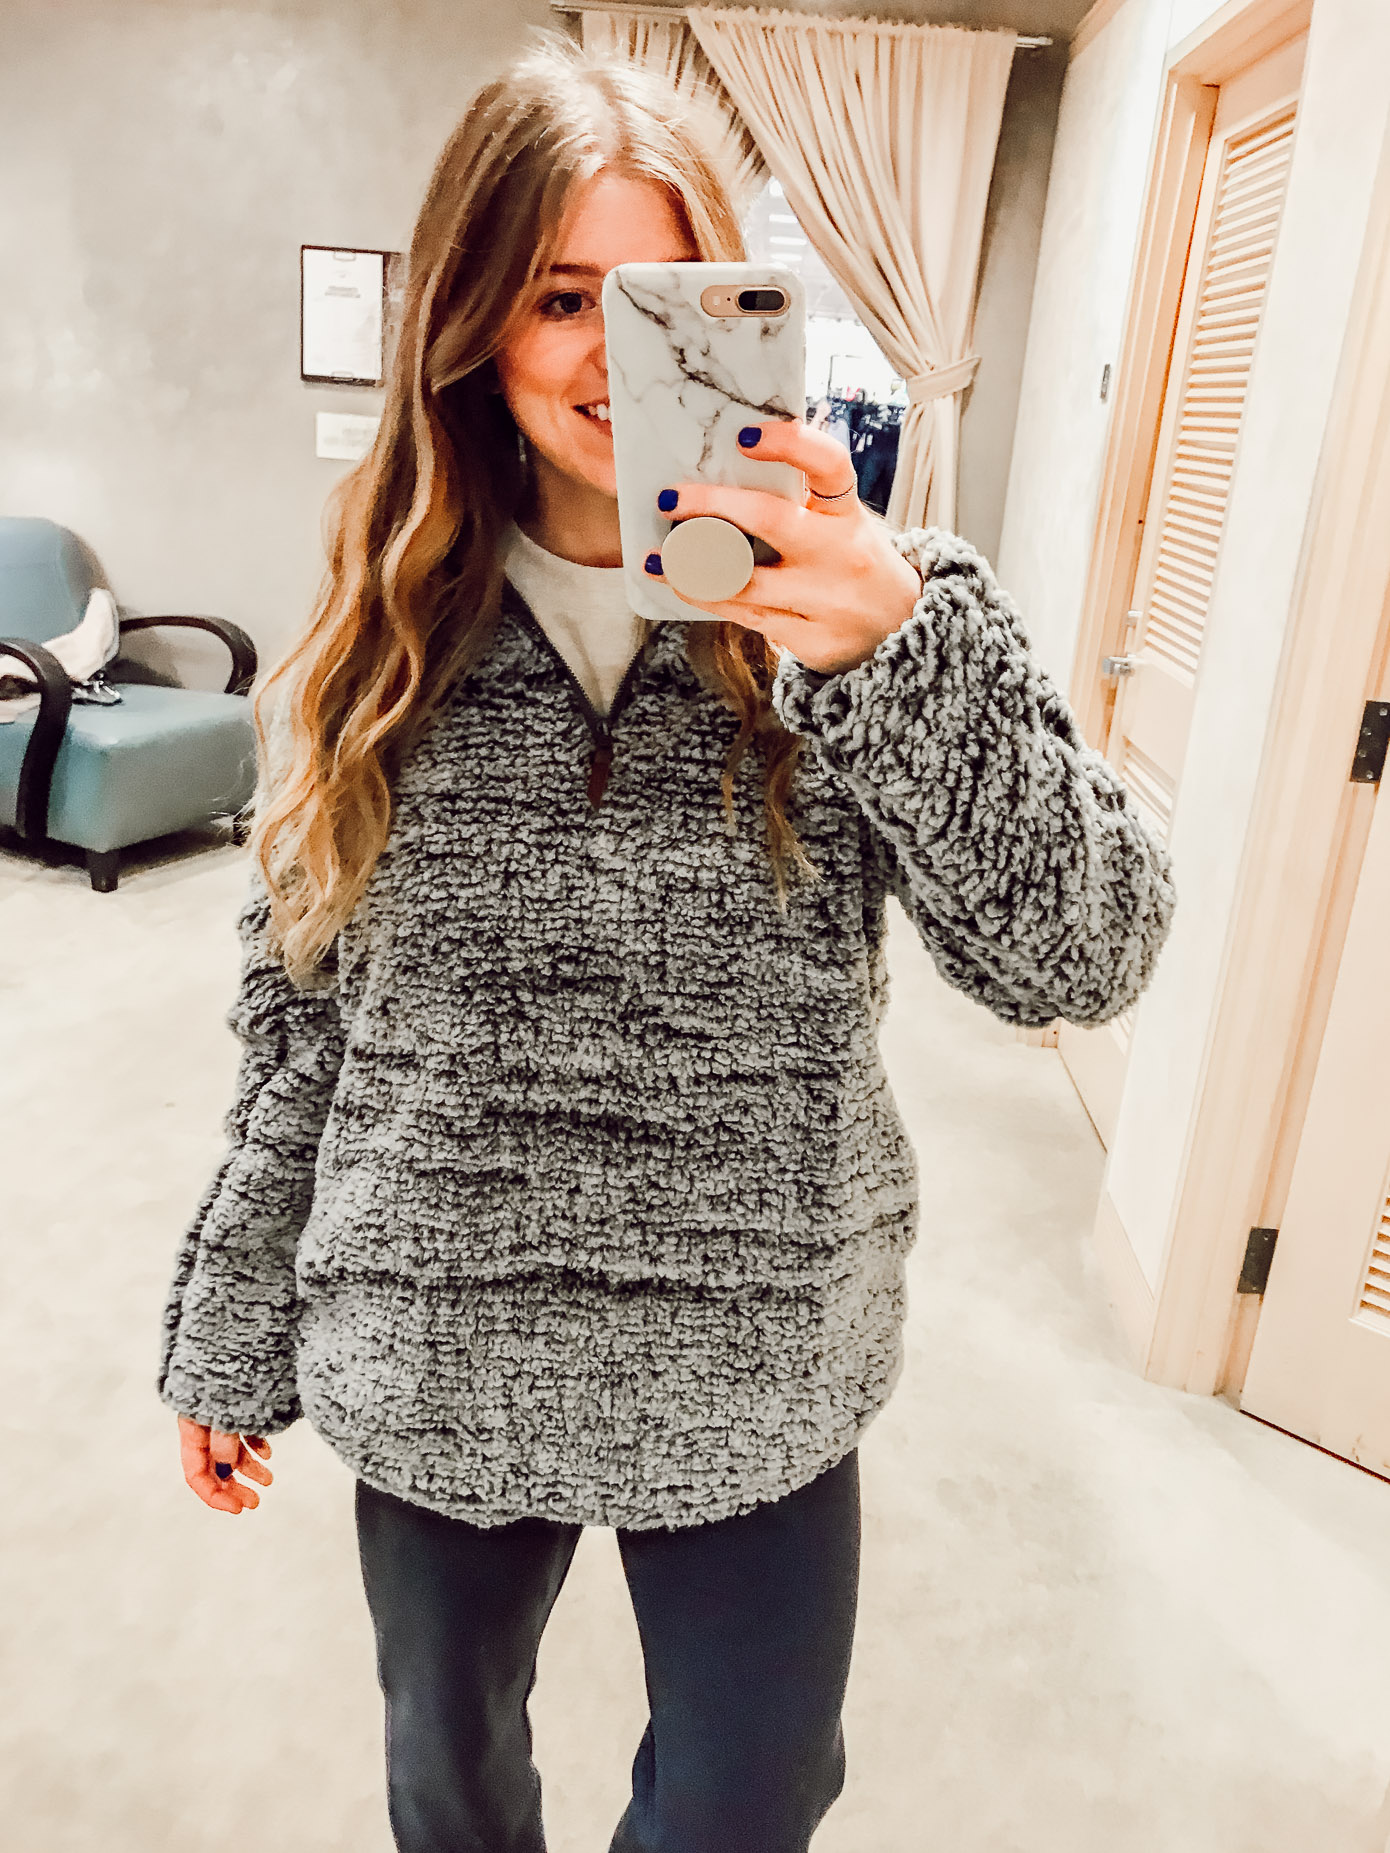 Thread & Supply Wubby Fleece Pullover | 2018 Nordstrom Anniversary Fitting Room Session featured on Louella Reese Life & Style Blog